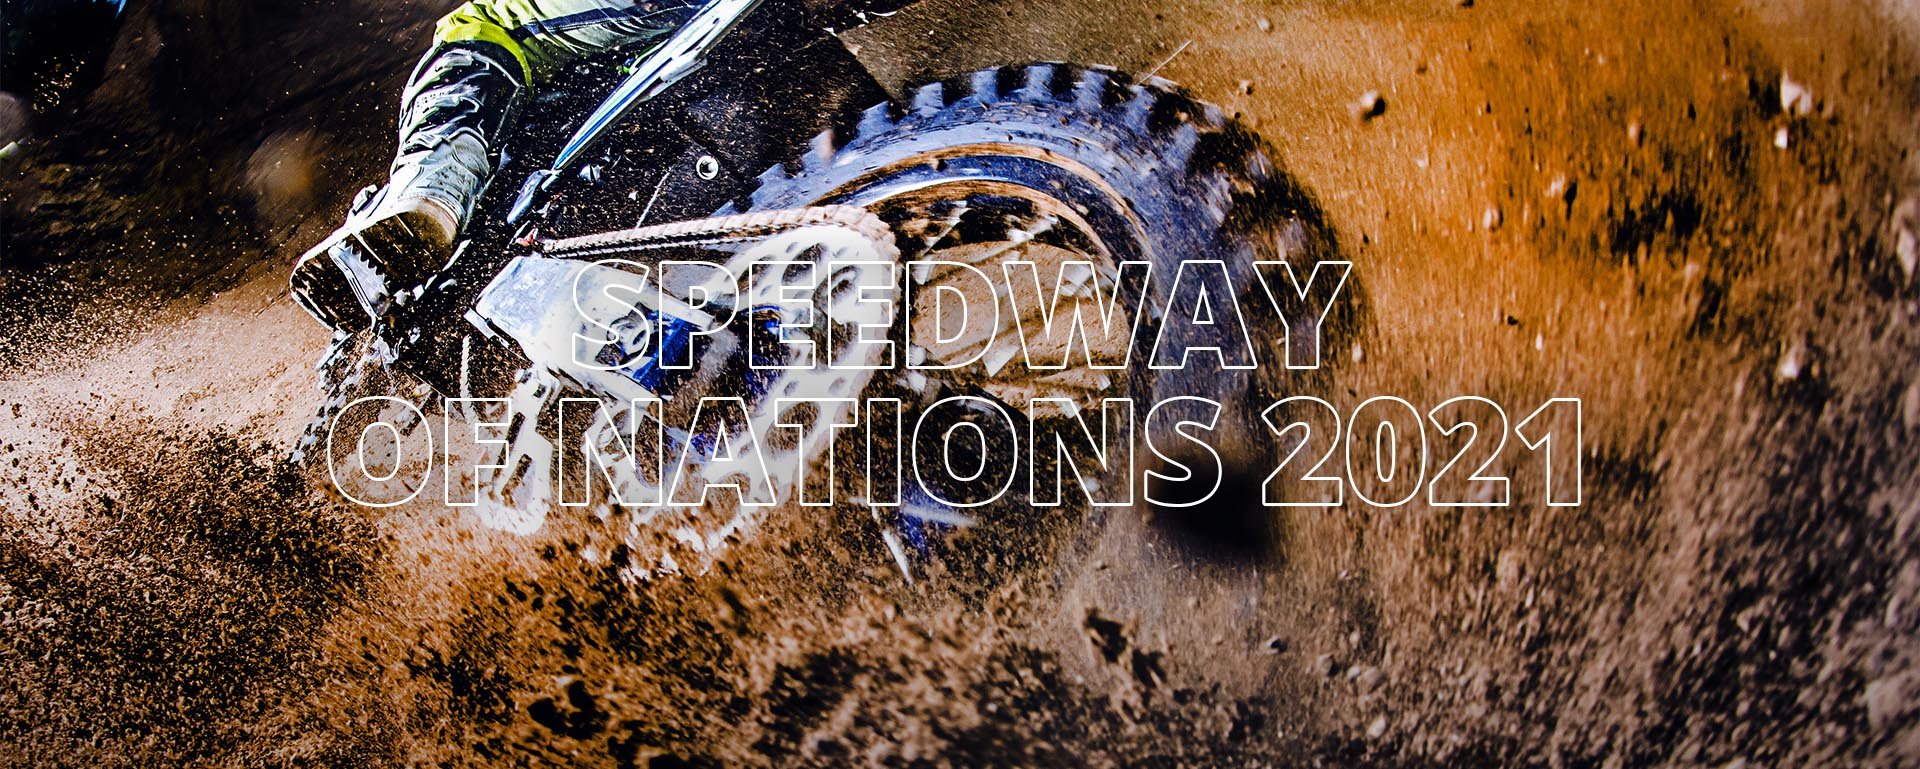 Speedway of Nations 2021